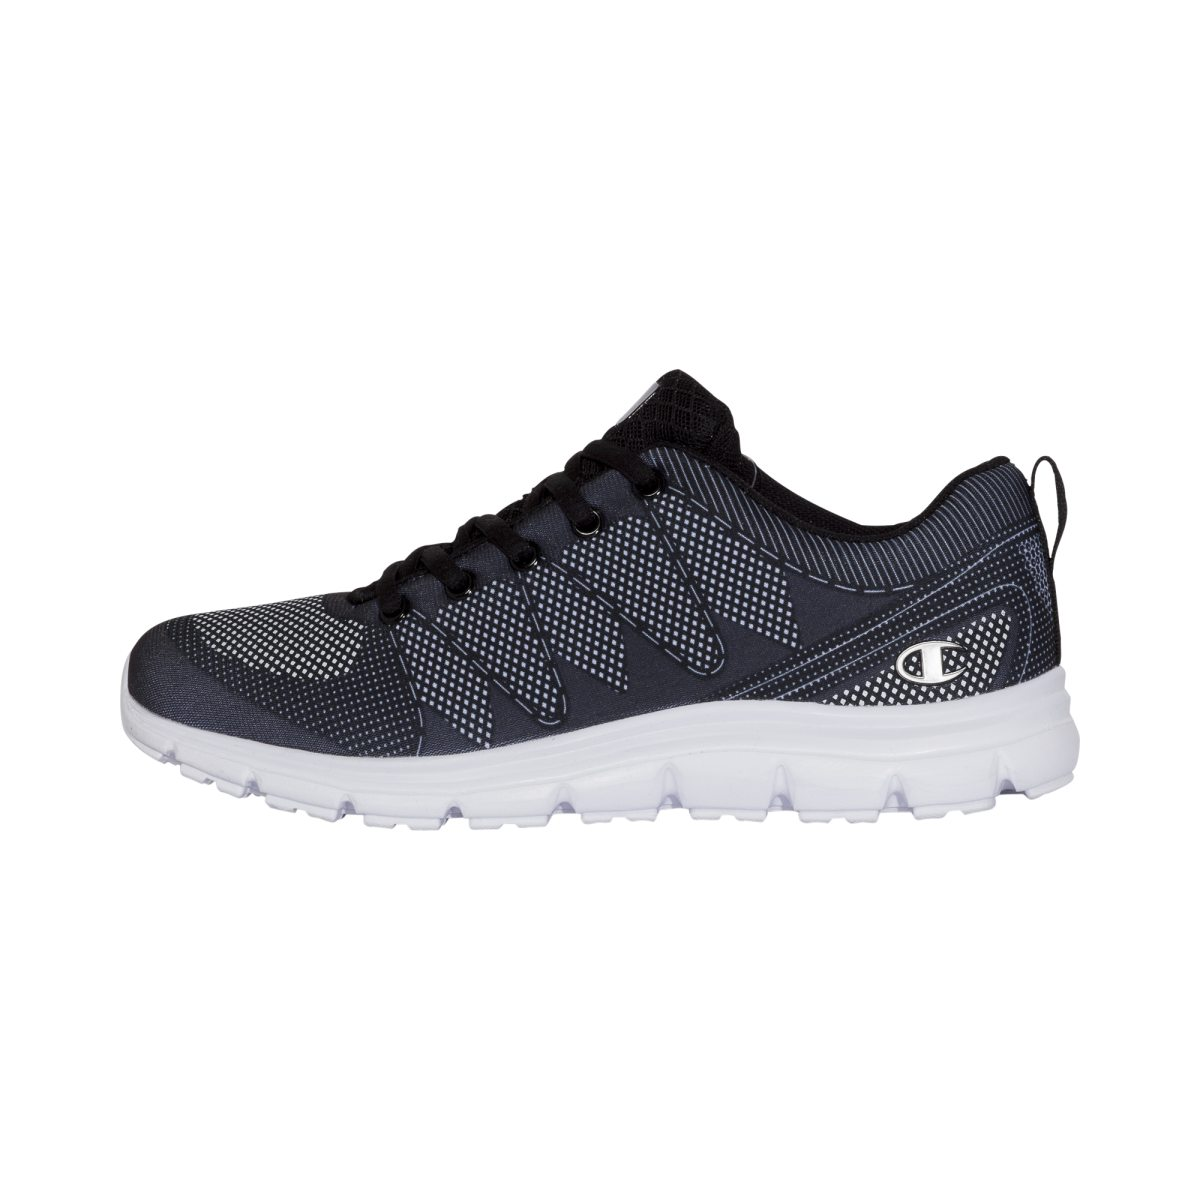 svart nike recreation low fritidssko dam fritidsskor